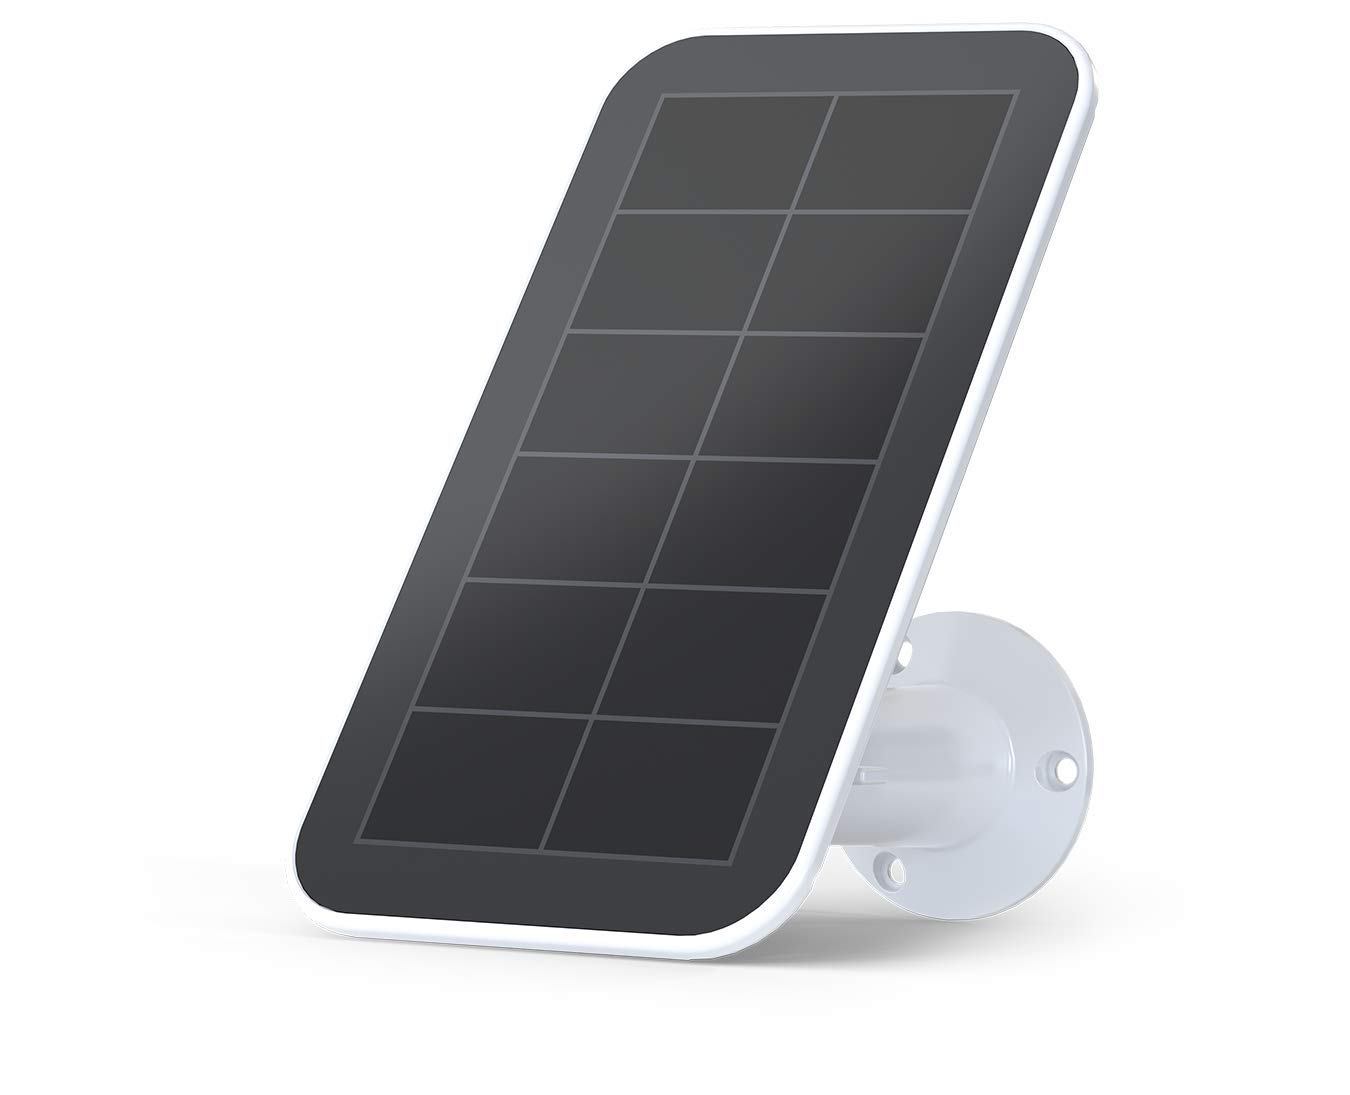 Arlo Certified Accessory - Solar Panel Charger